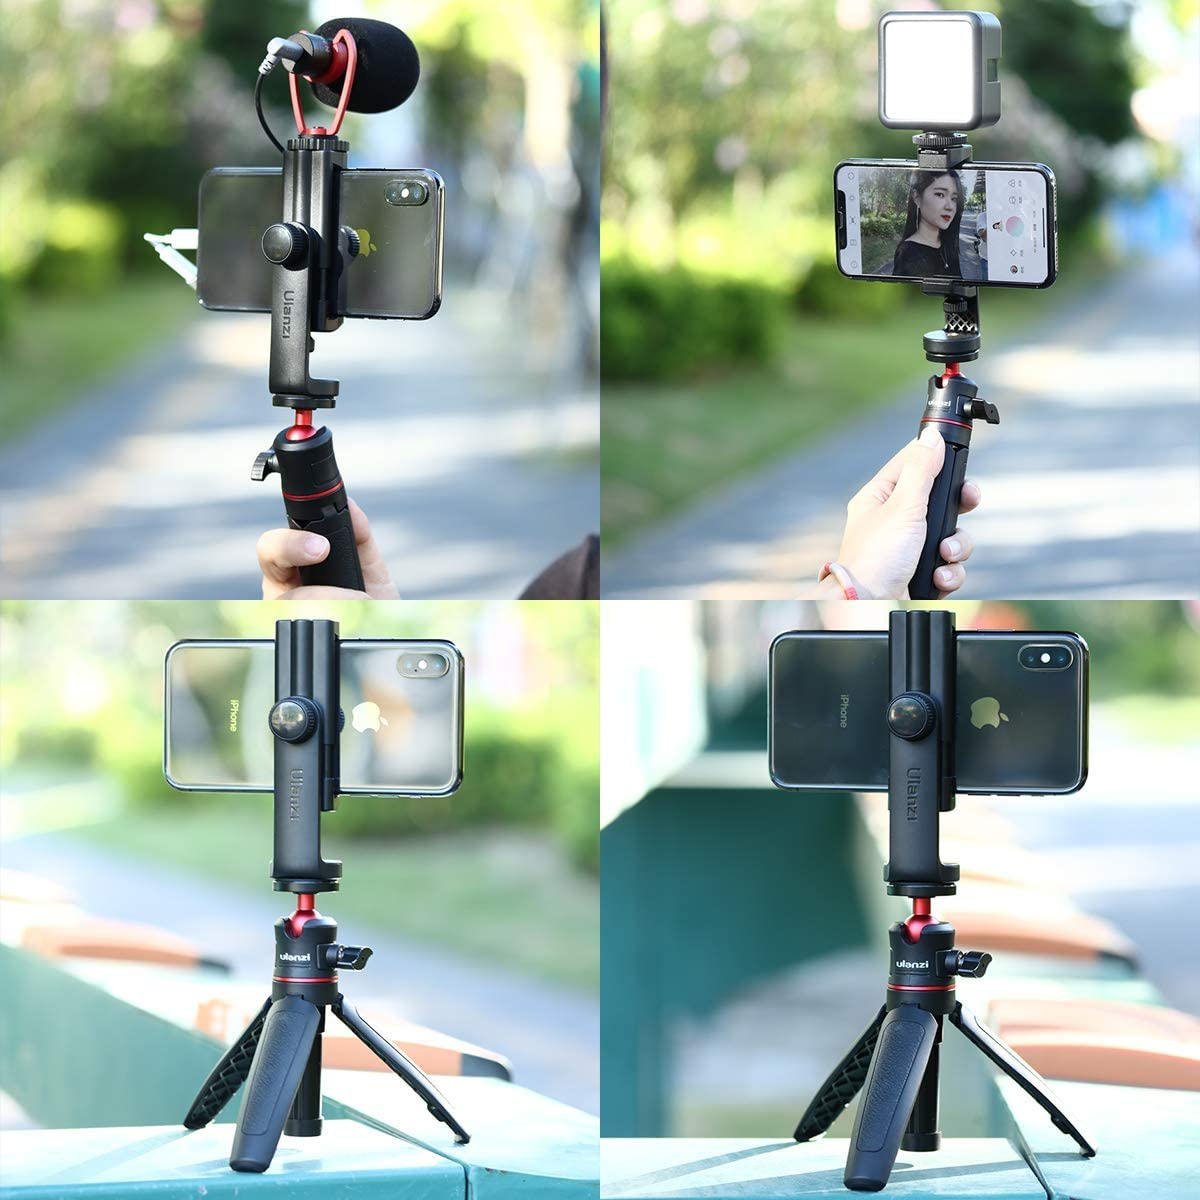 Ulanzi ST-17 Phone Tripod Mount with Cold Shoe Smartphone Tripod Adapter Cell Phone Holder for iPhone 11/11 Pro/11 Pro Max/X/XS/Xs Max : Camera & Photo